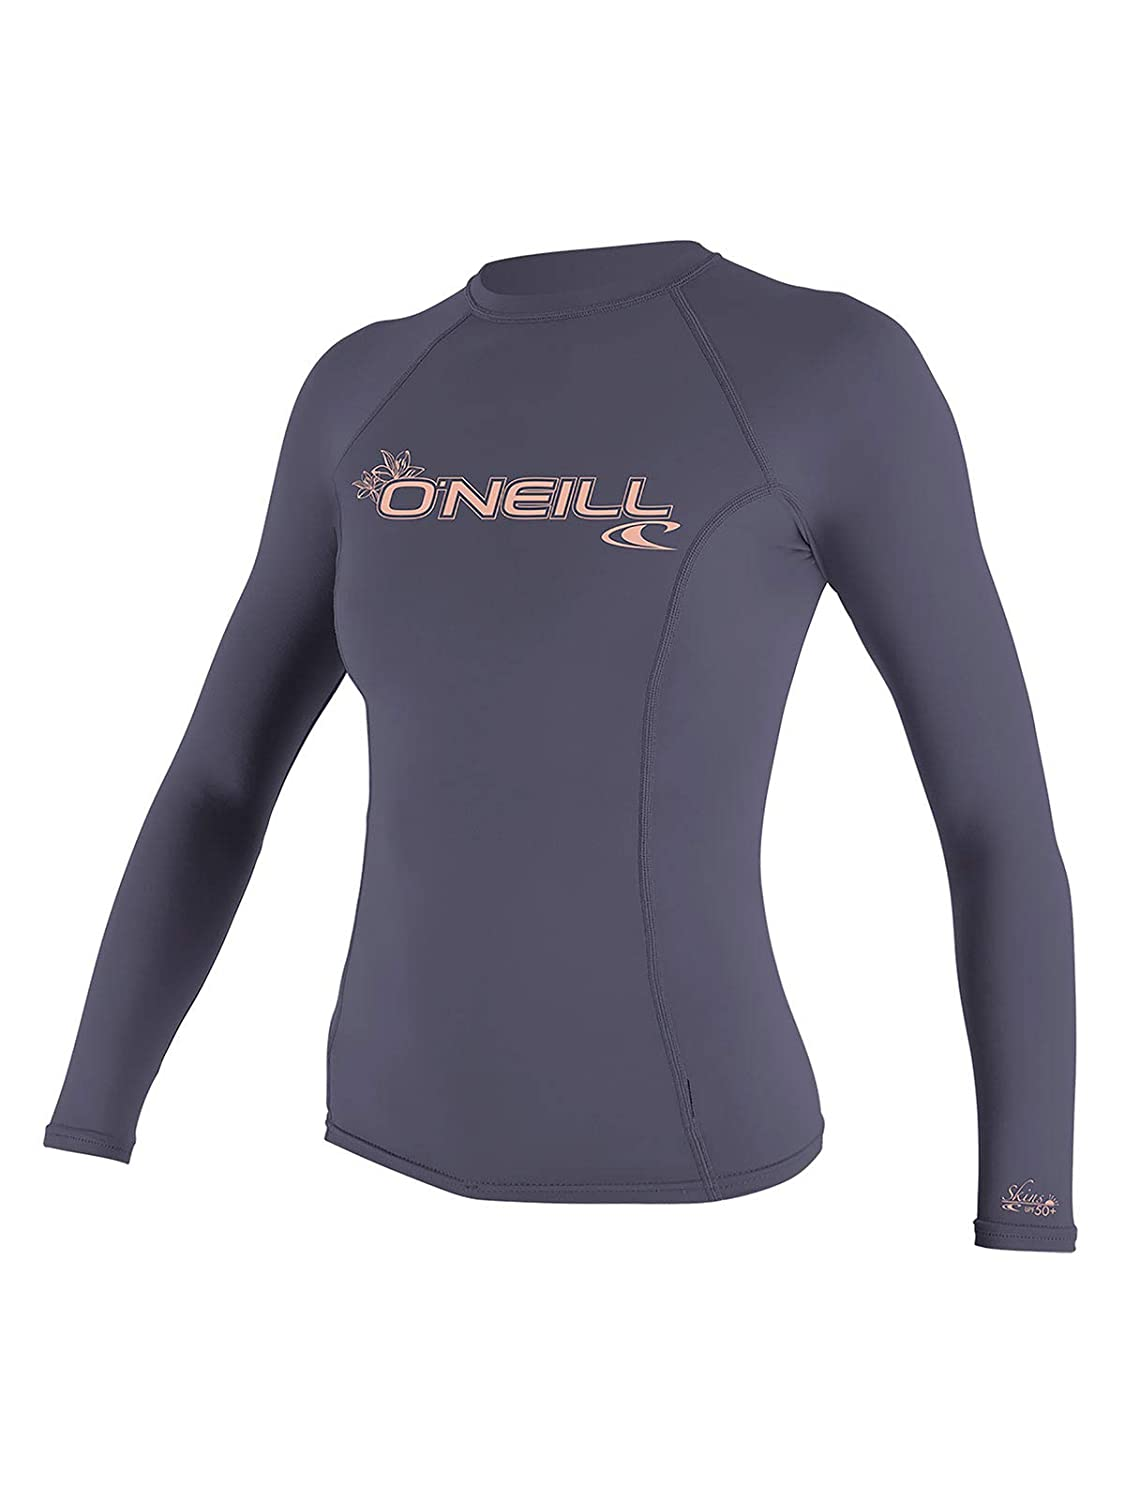 Dusk O'Neill Women's Hybrid UPF 50+ Long Sleeve Rash Guard